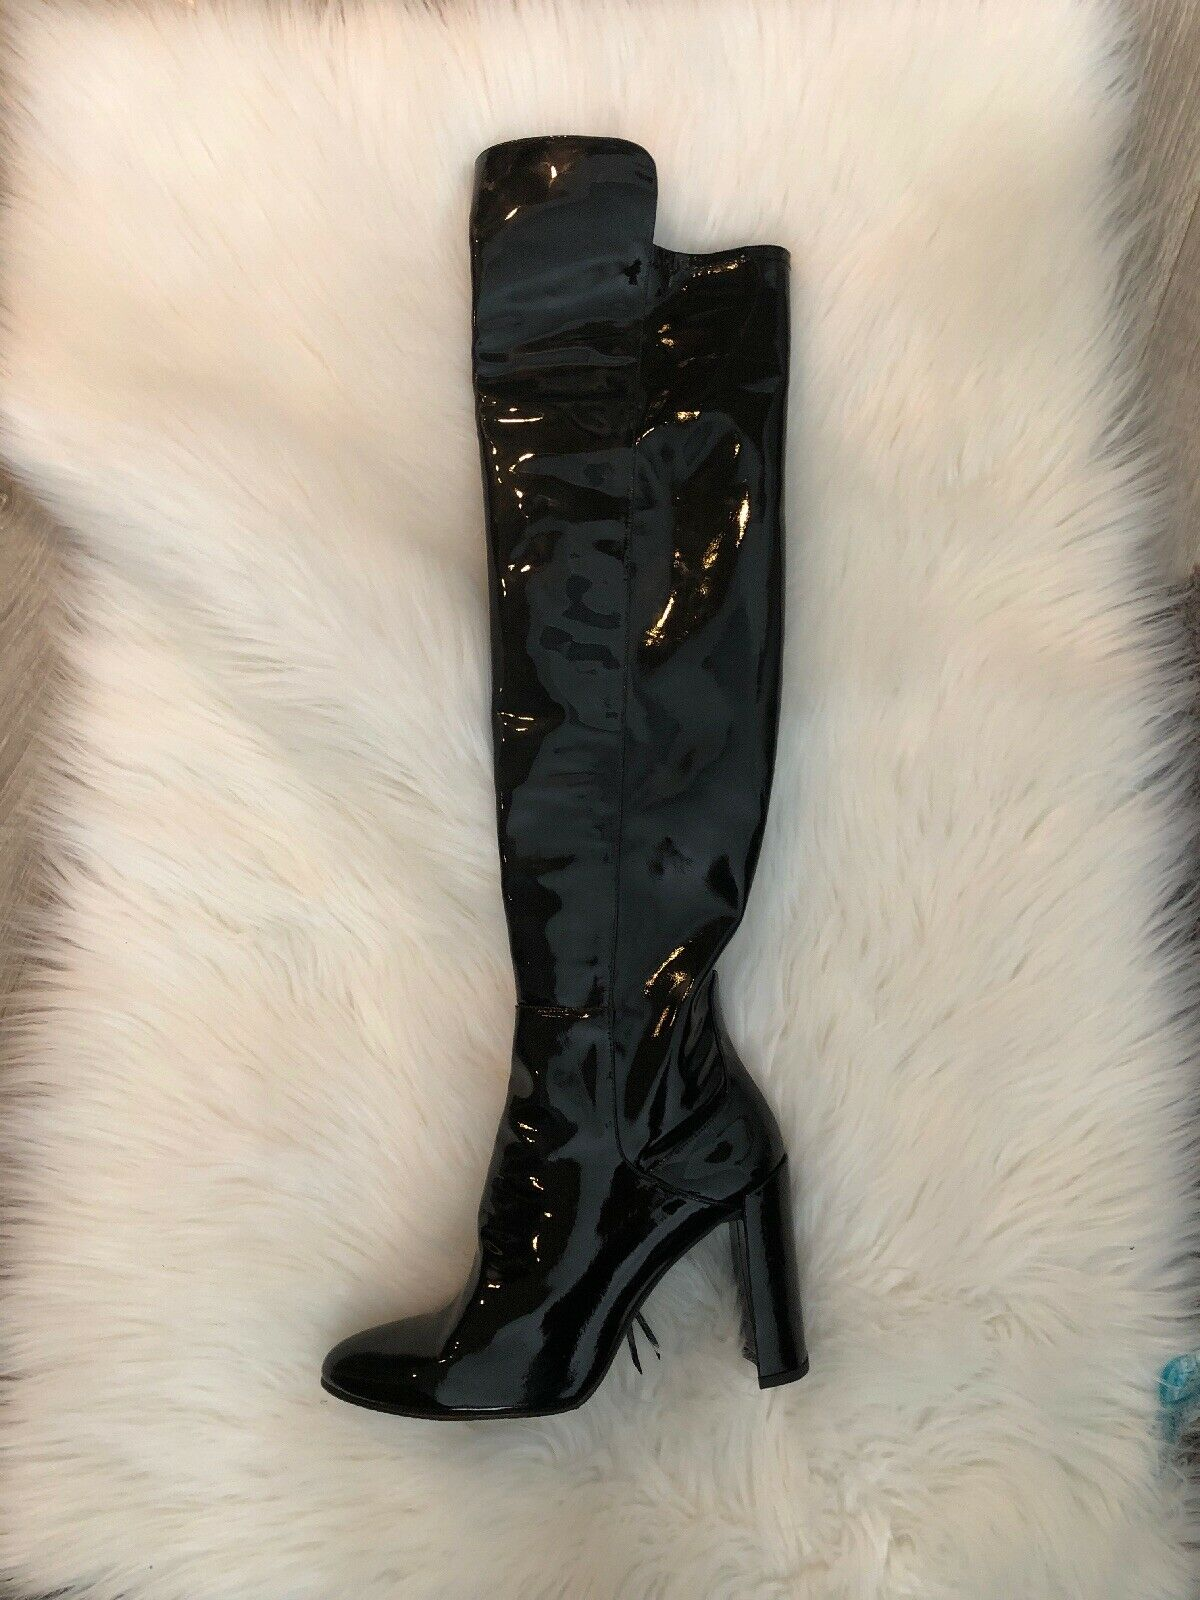 Stuart Weitzman Patent Patent Patent -leather Over Knee boots size8.5 Store display a6de7b